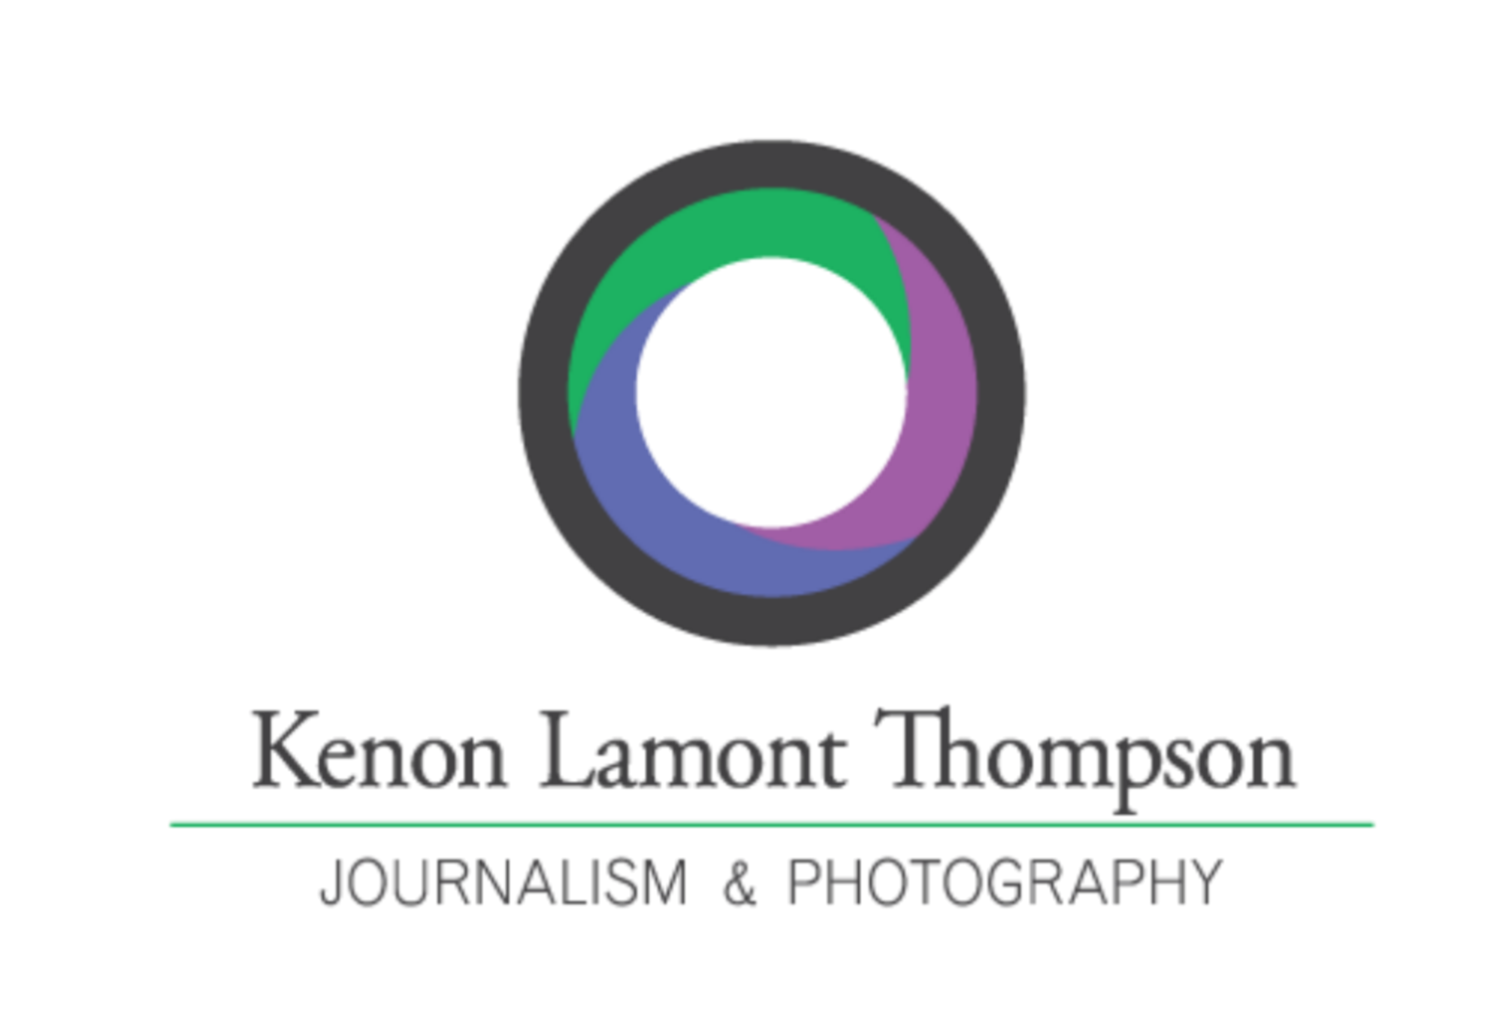 Kenon Lamont Thompson